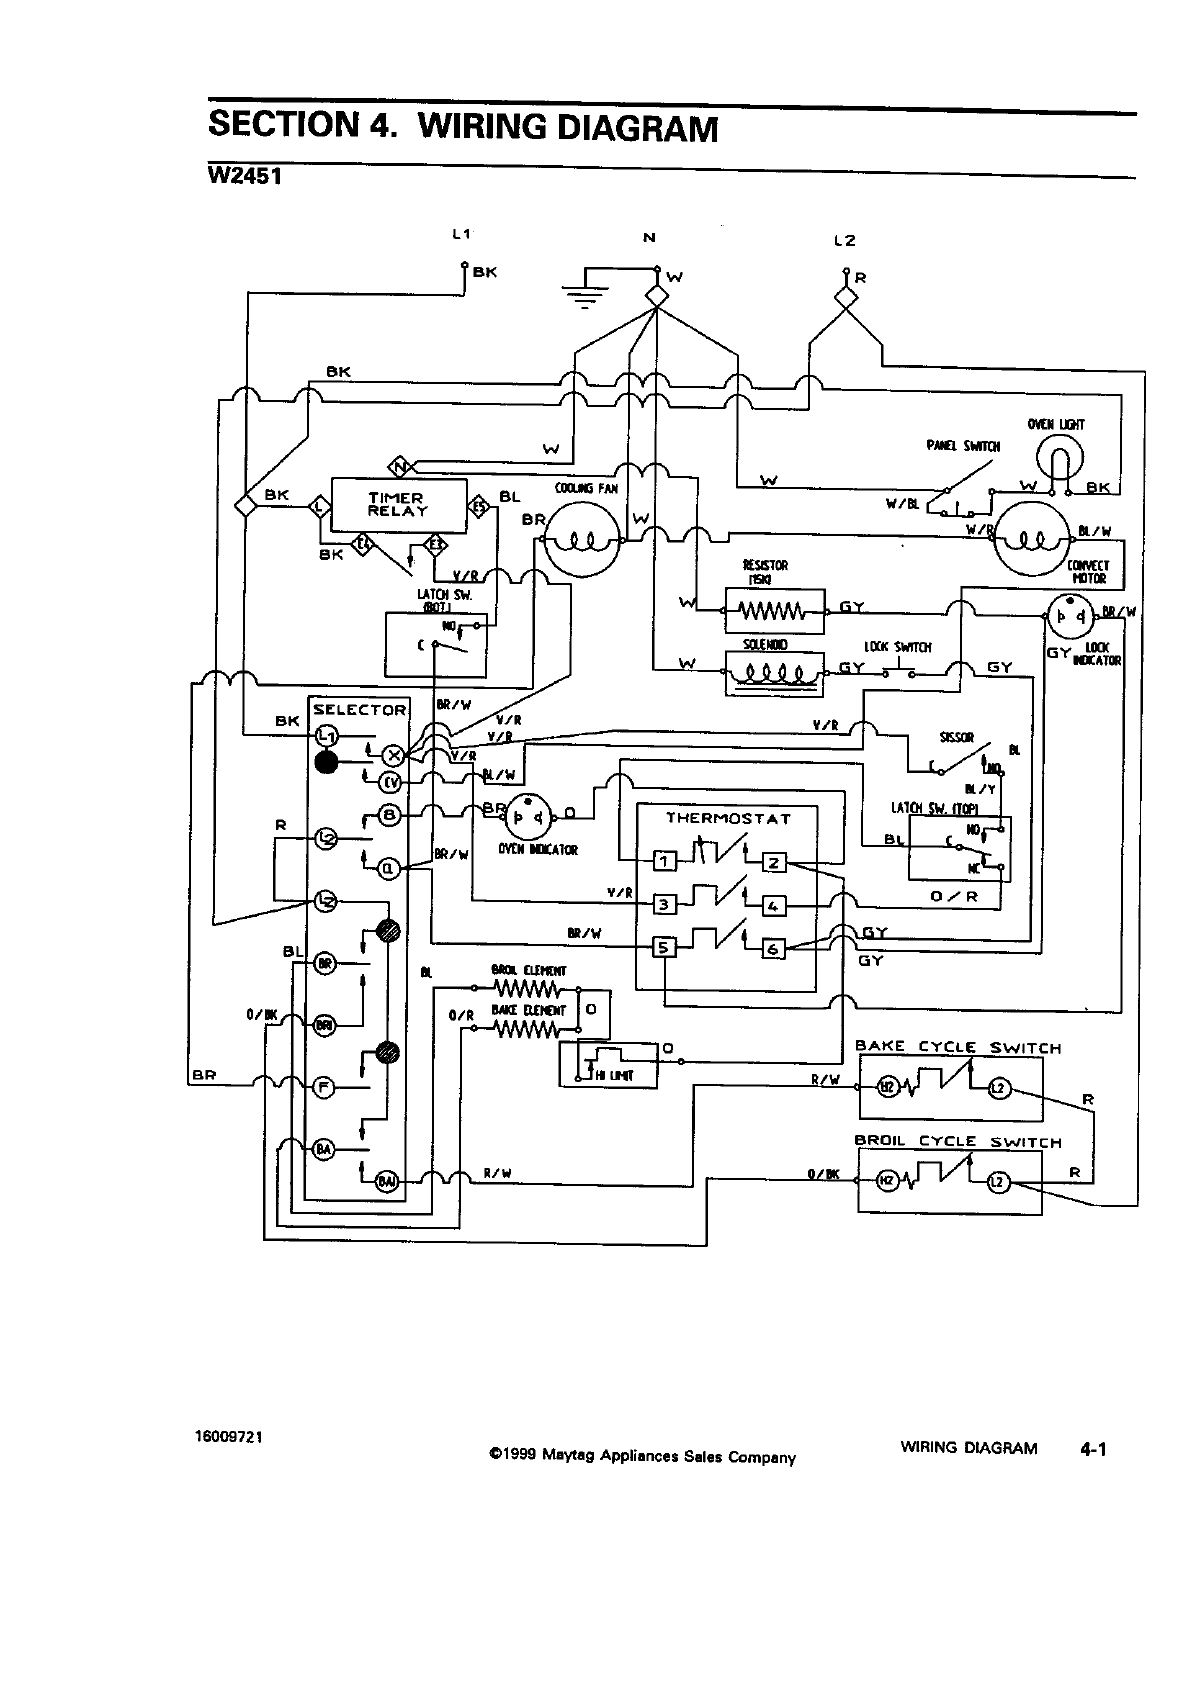 52b2f415 78fa 4259 88c0 be210120d02a bg21 page 33 of jenn air oven ww30430p user guide manualsonline com Basic Electrical Wiring Diagrams at reclaimingppi.co